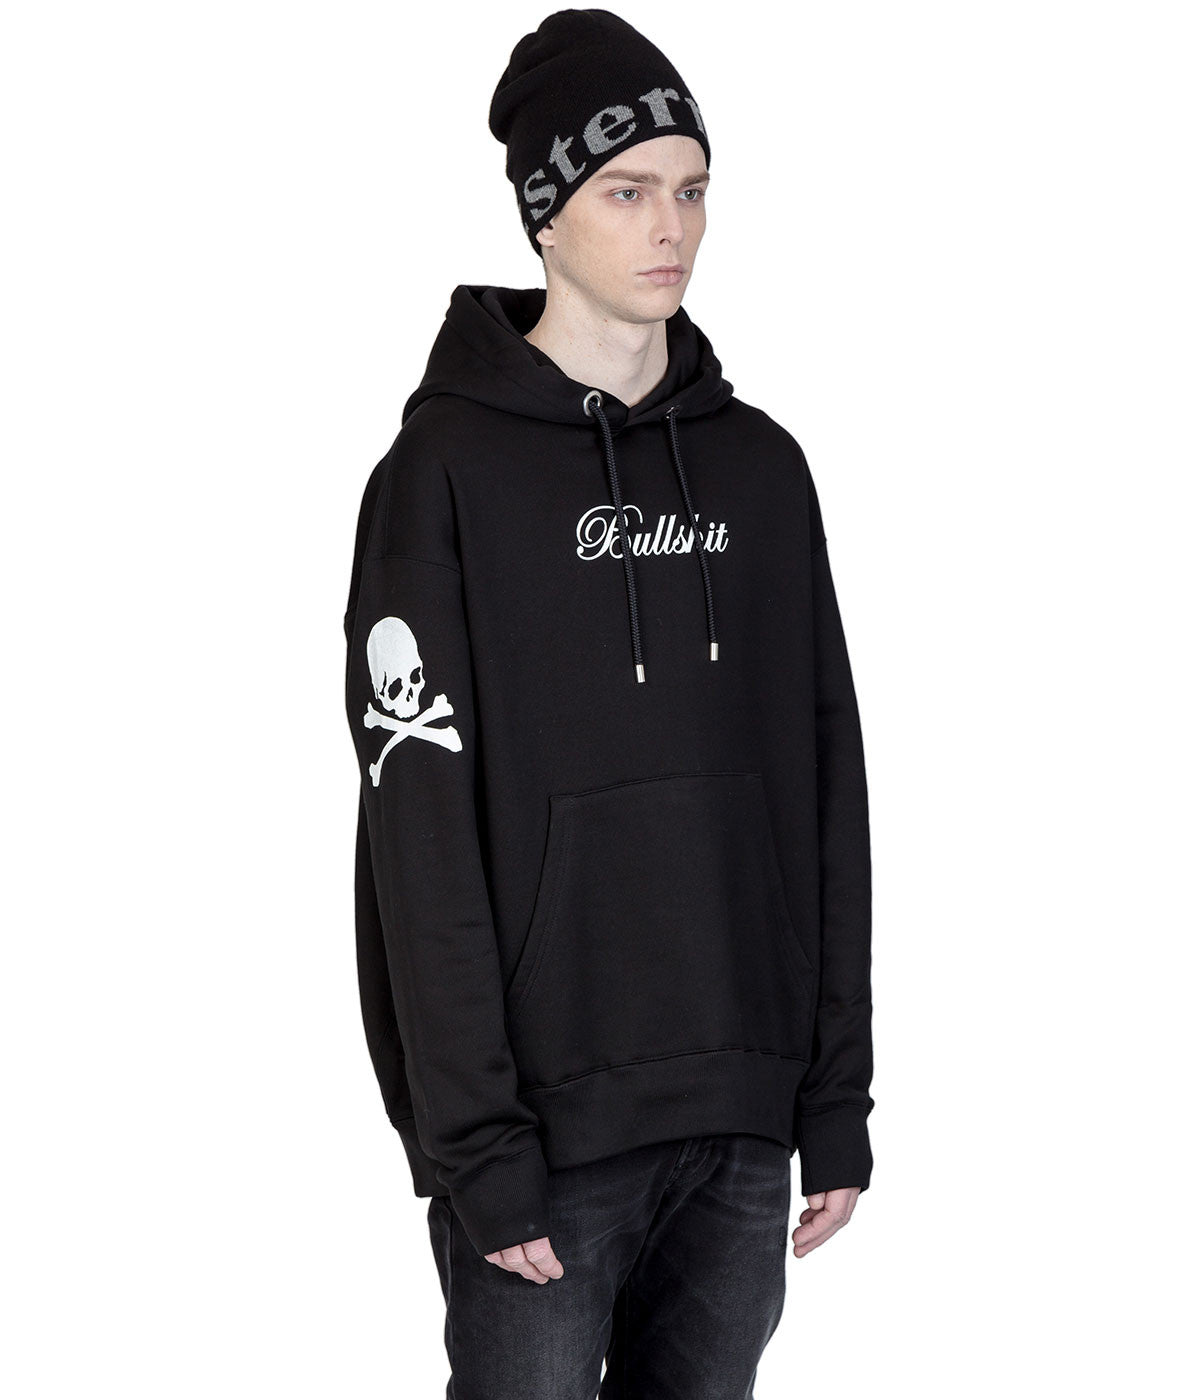 Black Oversized Hood Graphic Sweatshirt